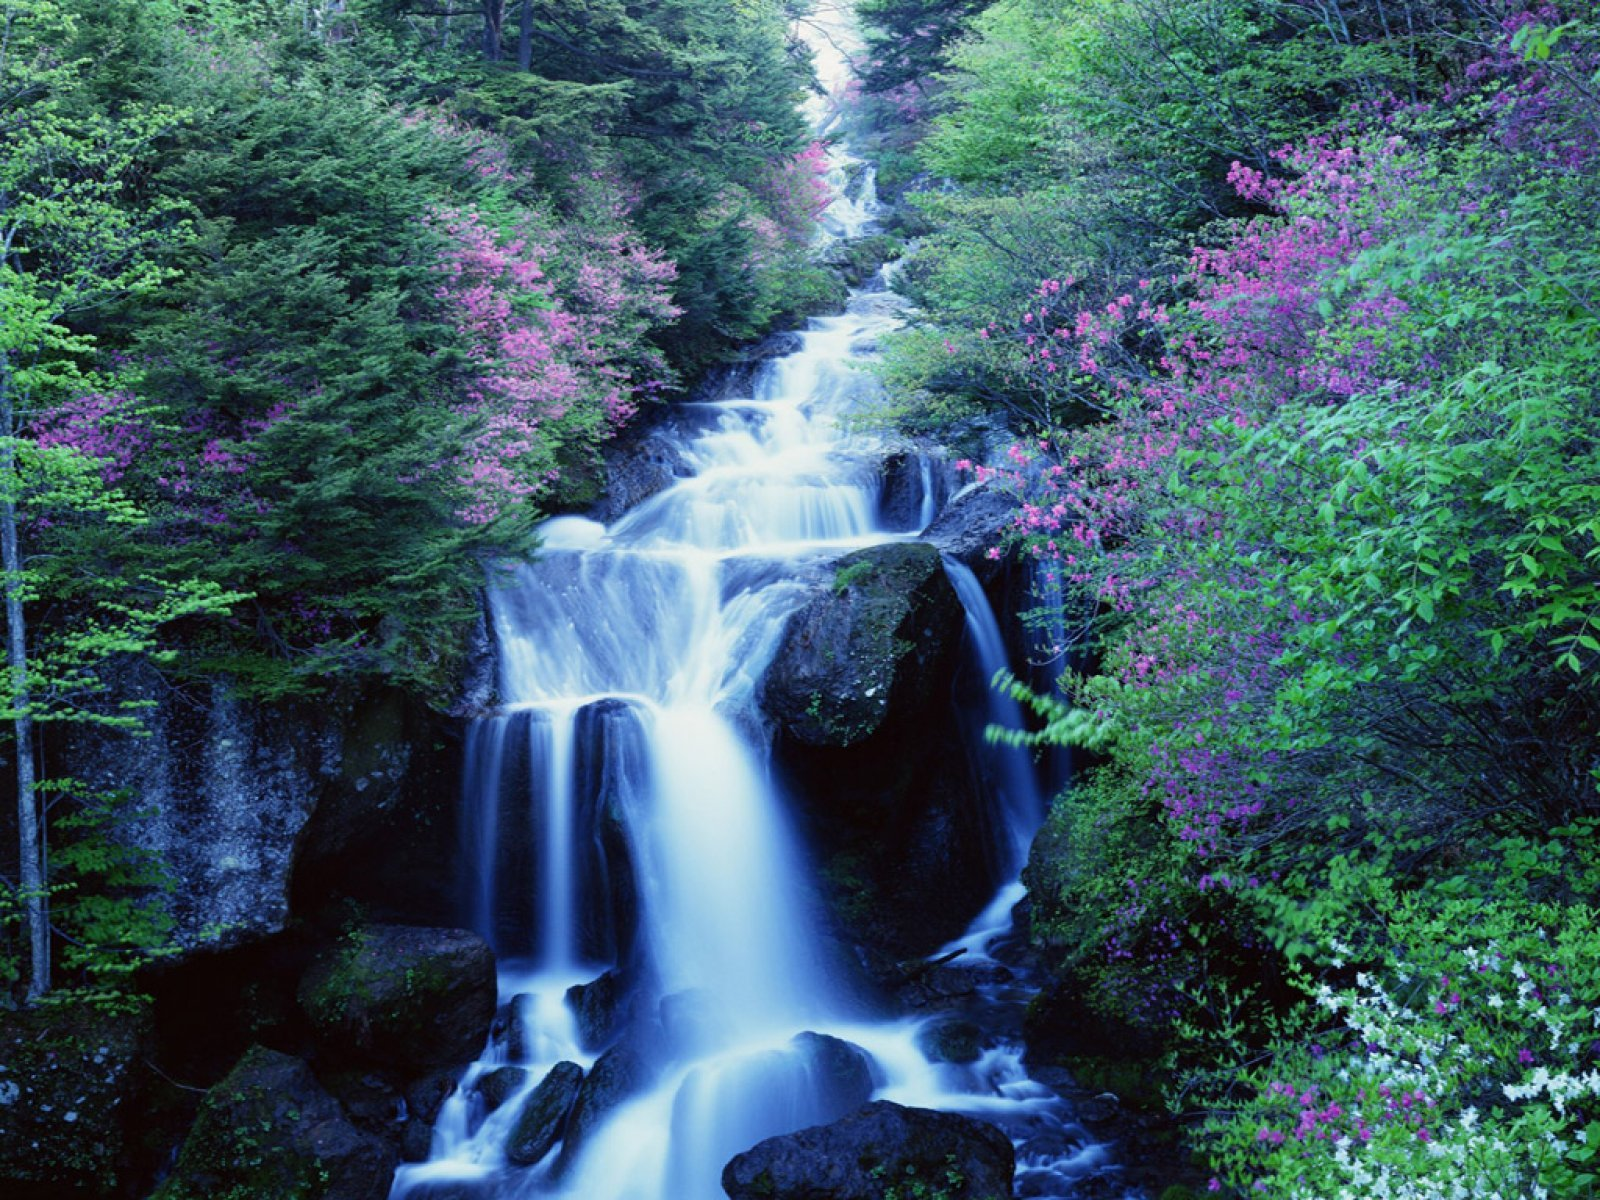 Free Desktop Wallpaper Screensaver Downloads: Free Screensavers Wallpaper Waterfalls